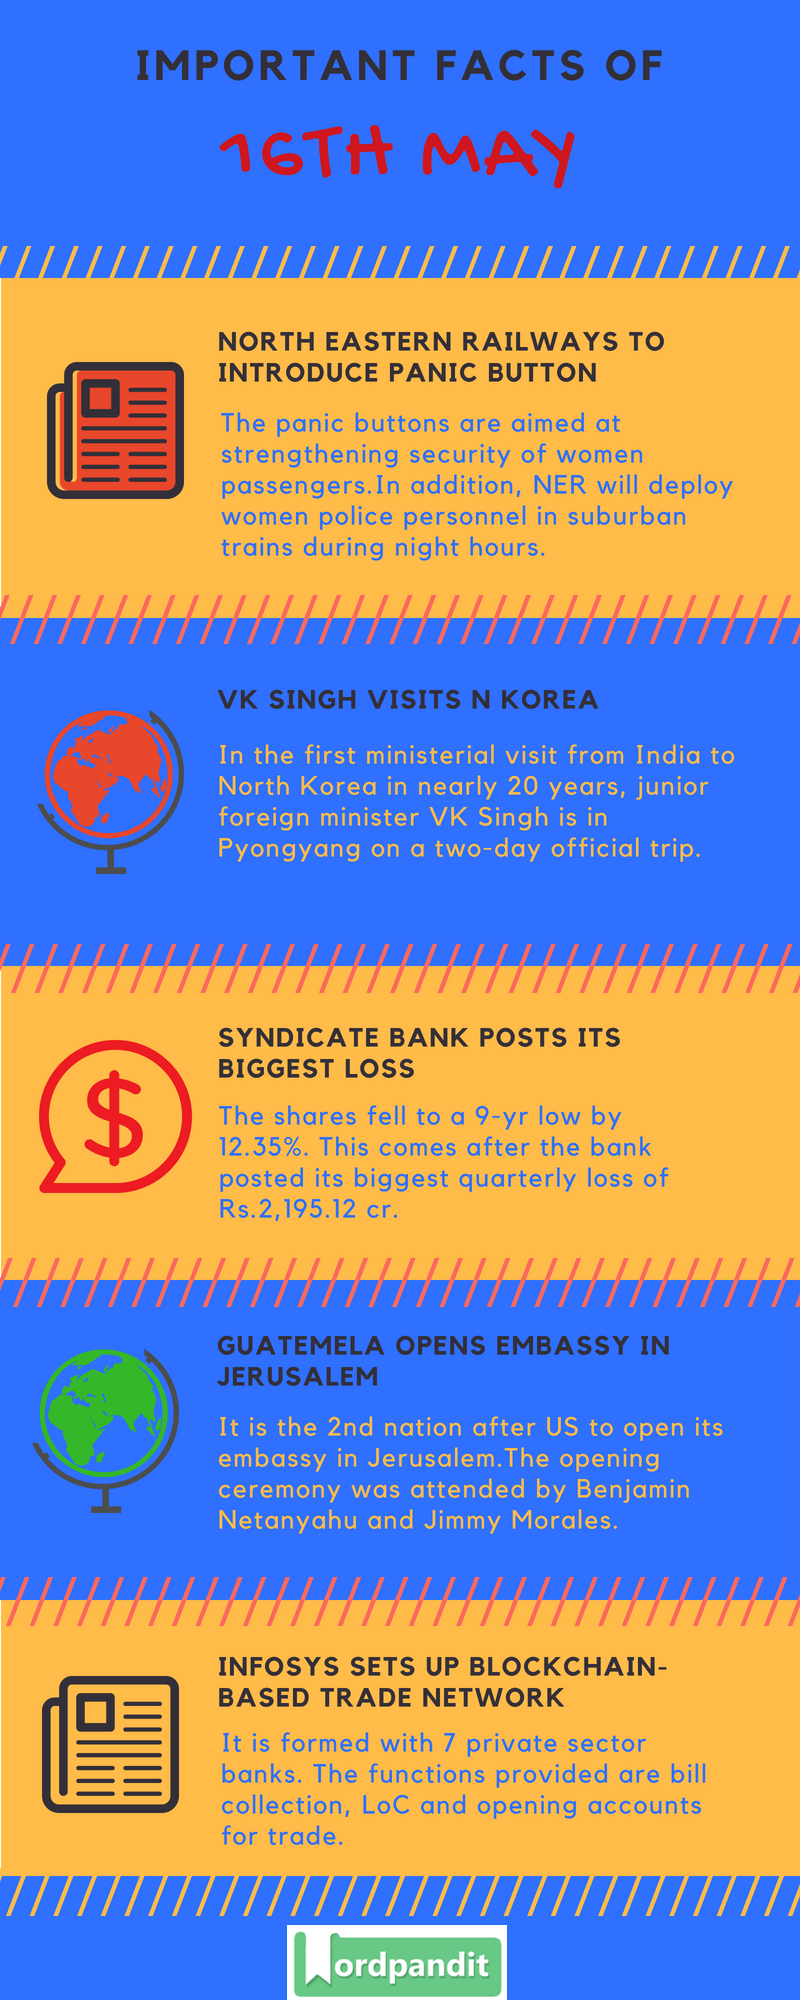 Daily Current Affairs 16 May 2018 Current Affairs Quiz May 16 2018 Current Affairs Infographic